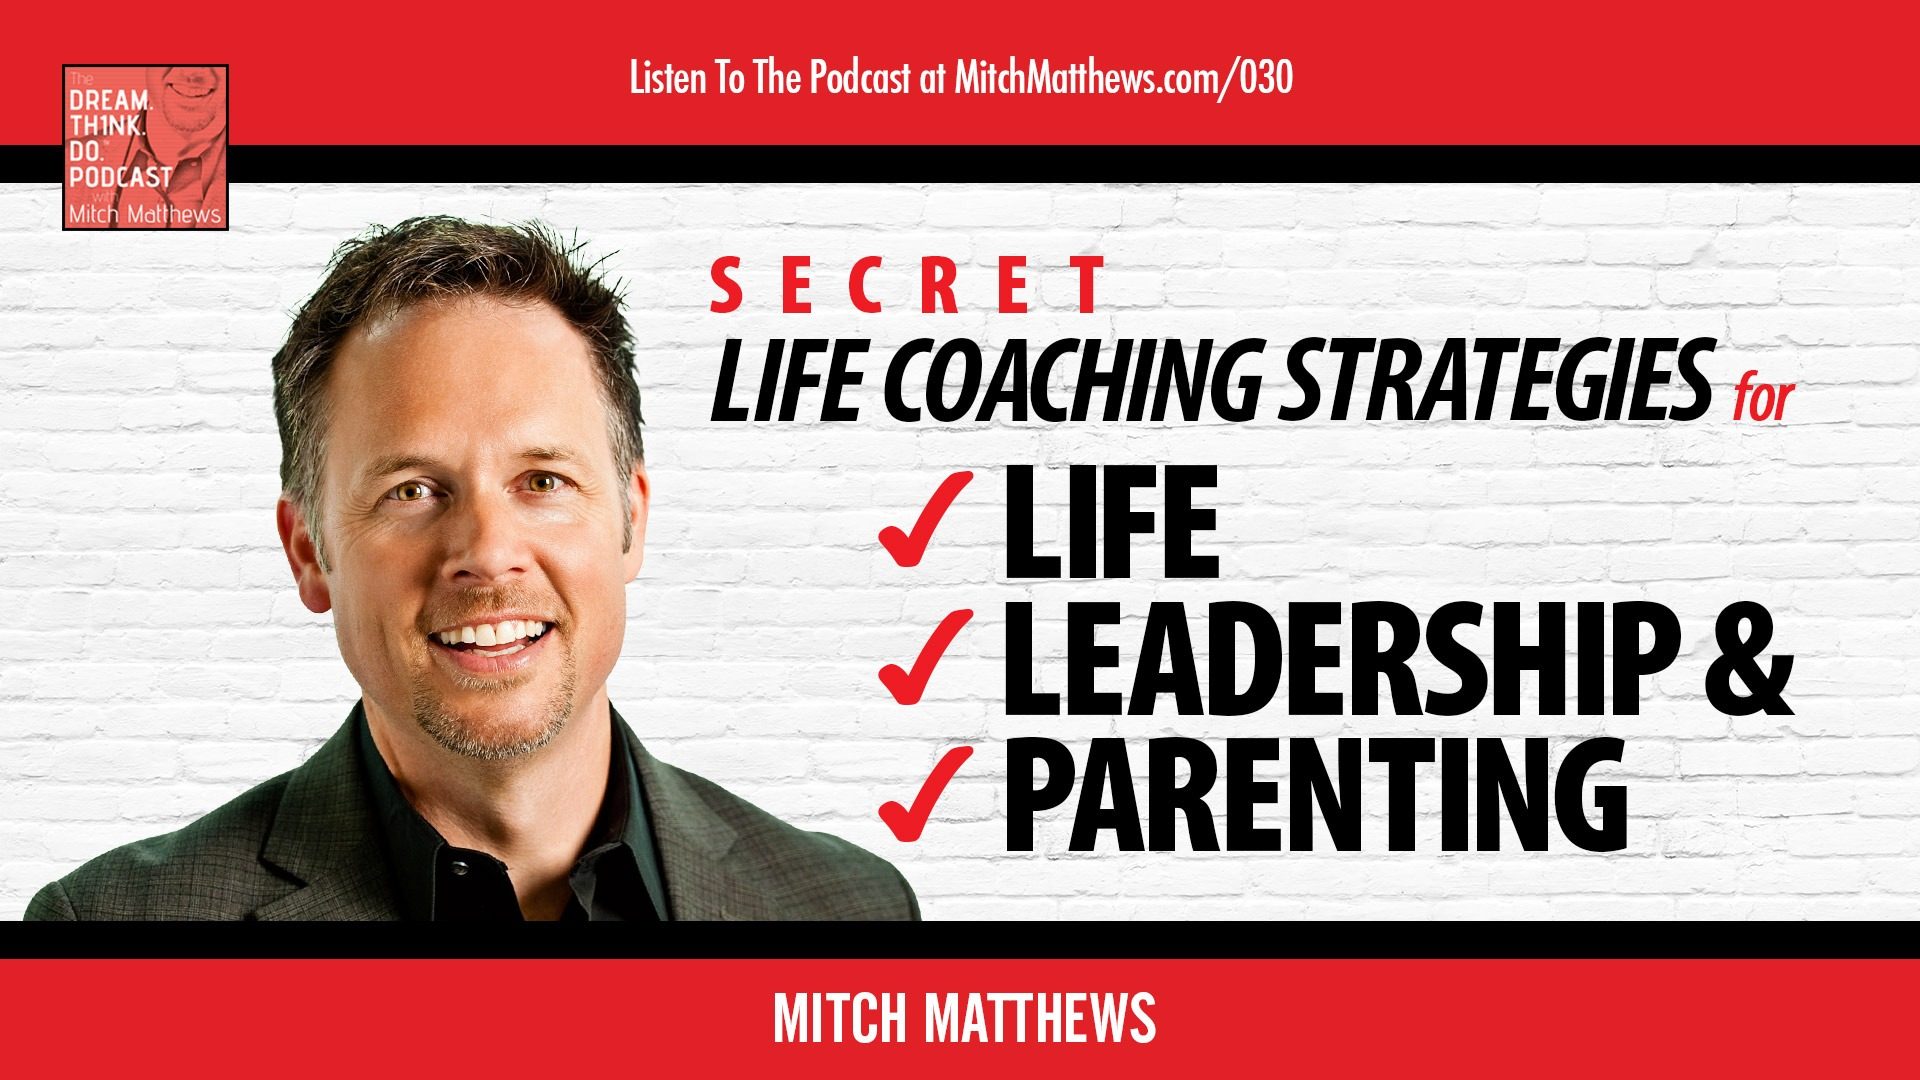 Secret Life Coaching Strategies